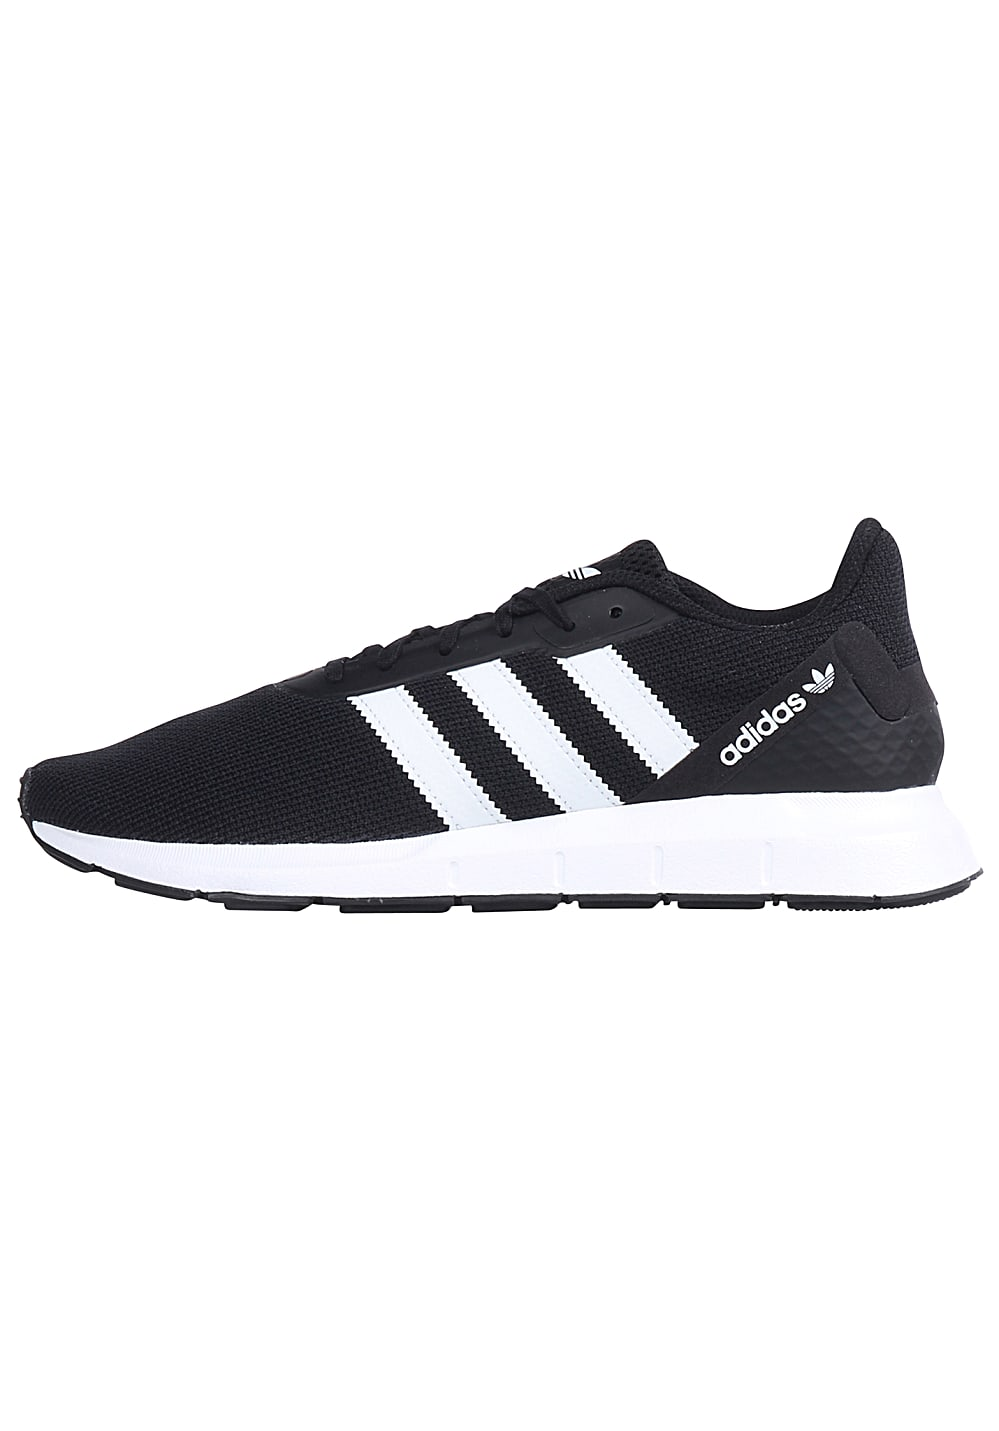 adidas Originals Swift Run Rf Sneaker für Herren Schwarz